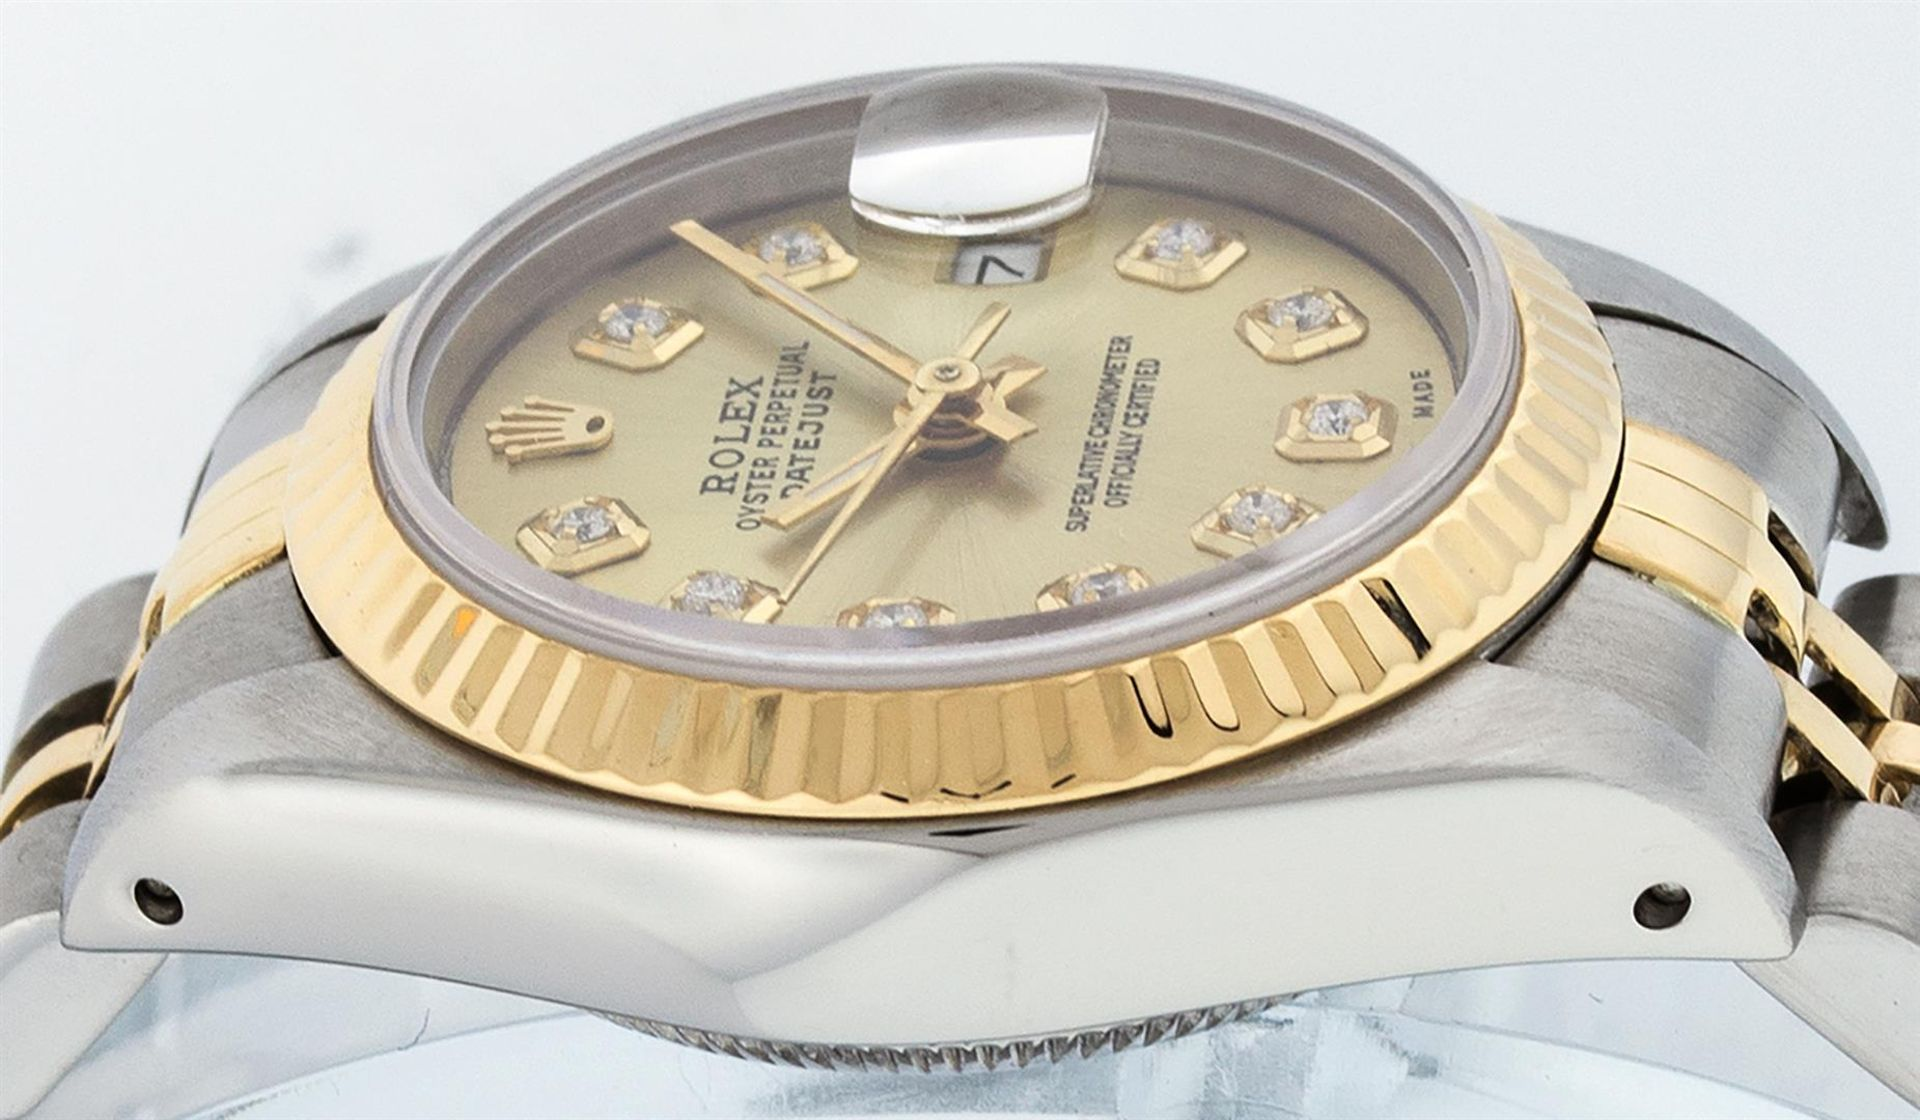 Rolex Ladies 2 Tone Champagne Diamond 26MM Datejust Wristwatch - Image 4 of 9